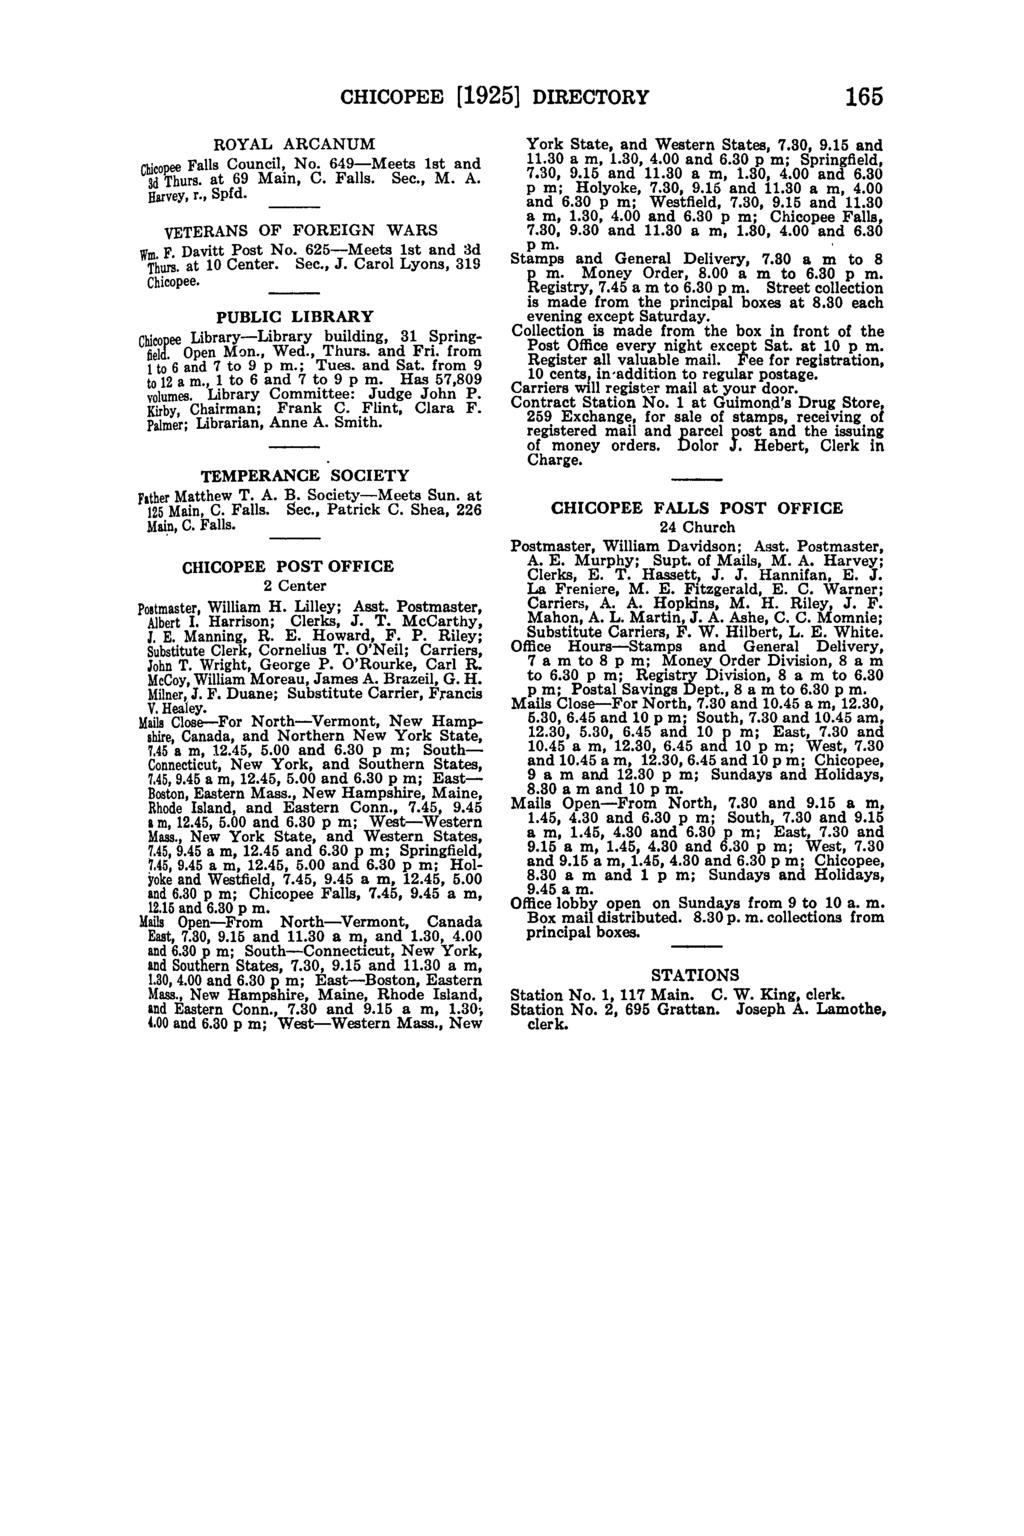 CHICOPEE [1925] DIRECTORY 165 ROYAL ARCANUM Chicopee Council, No. 649-Meets 1st and 3d Thurs. at 69 Main, C.. Sec., M. A. Harvey, r., Spfd. VETERANS OF FOREIGN WARS Wm. F. Davitt Post No.